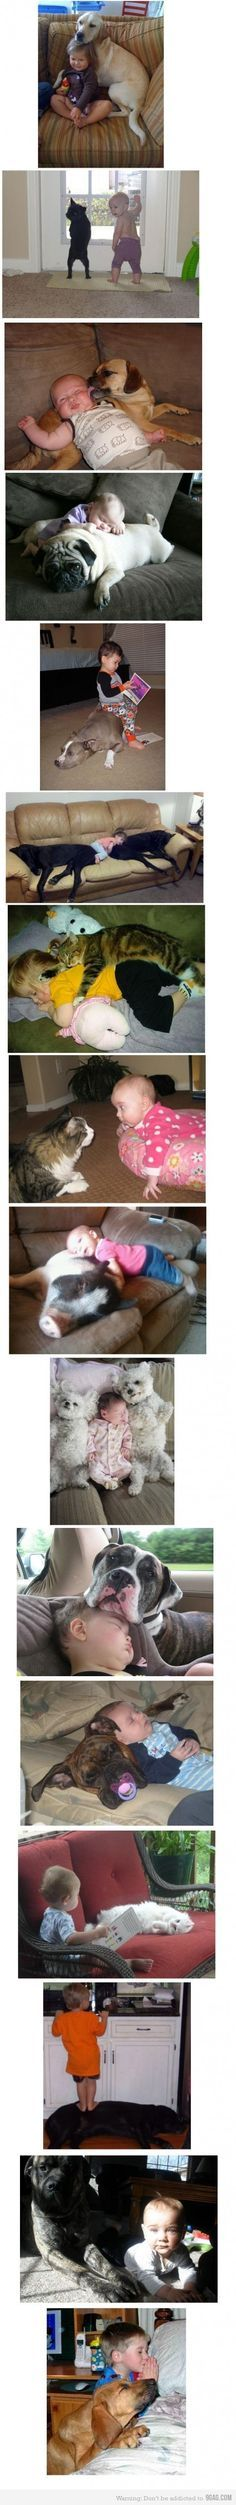 Why does kids need an animal?!